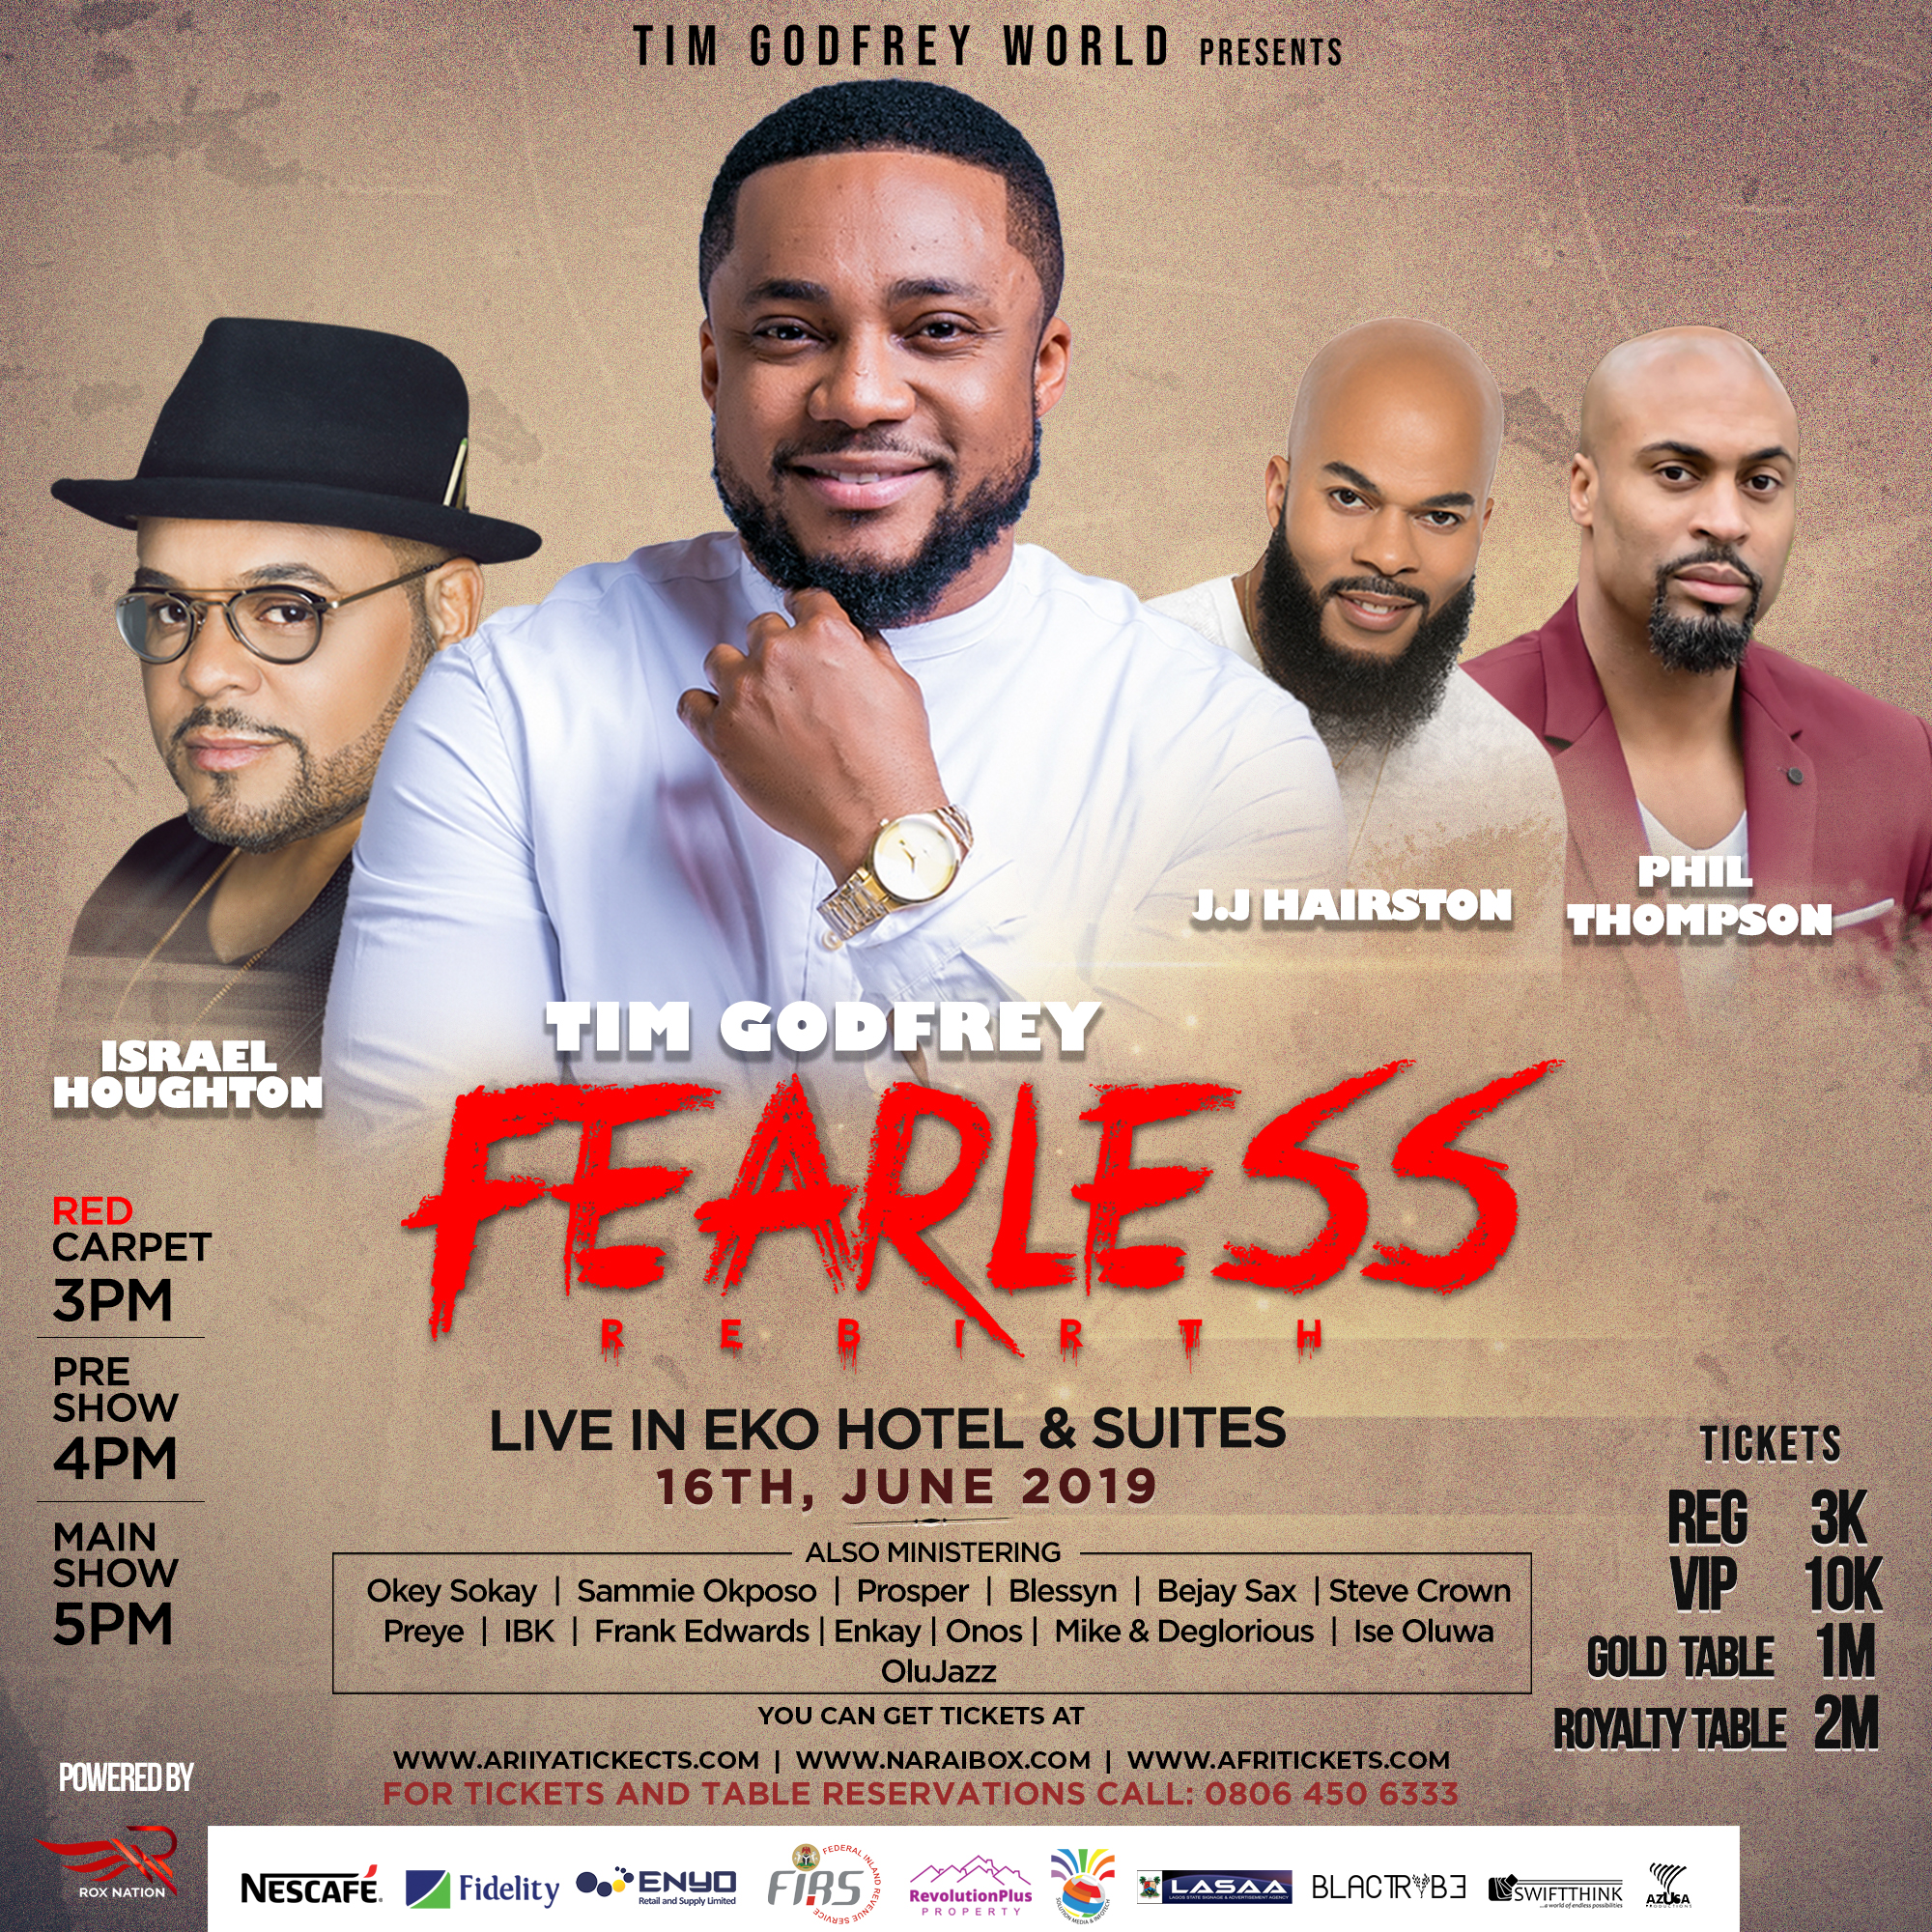 Israel Houghton, Phil Thompson & JJ Hairston to Minister at Tim Godfrey 'Fearless Rebirth' Concert